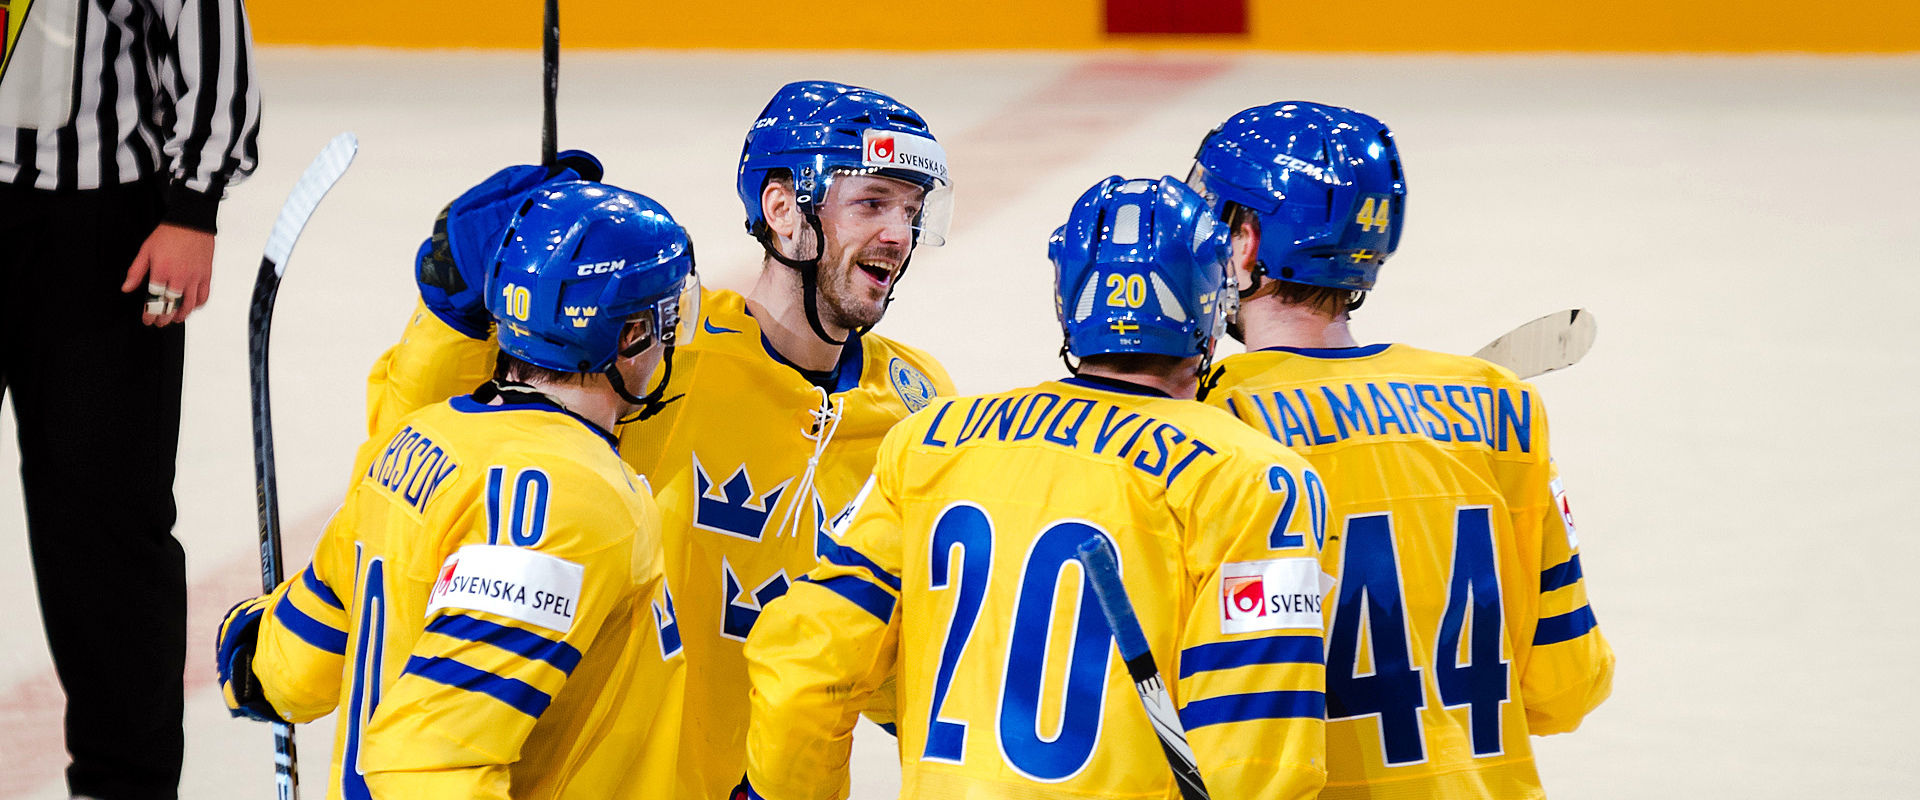 University Cities In Sweden And Their Ice Hockey Teams Study Eu